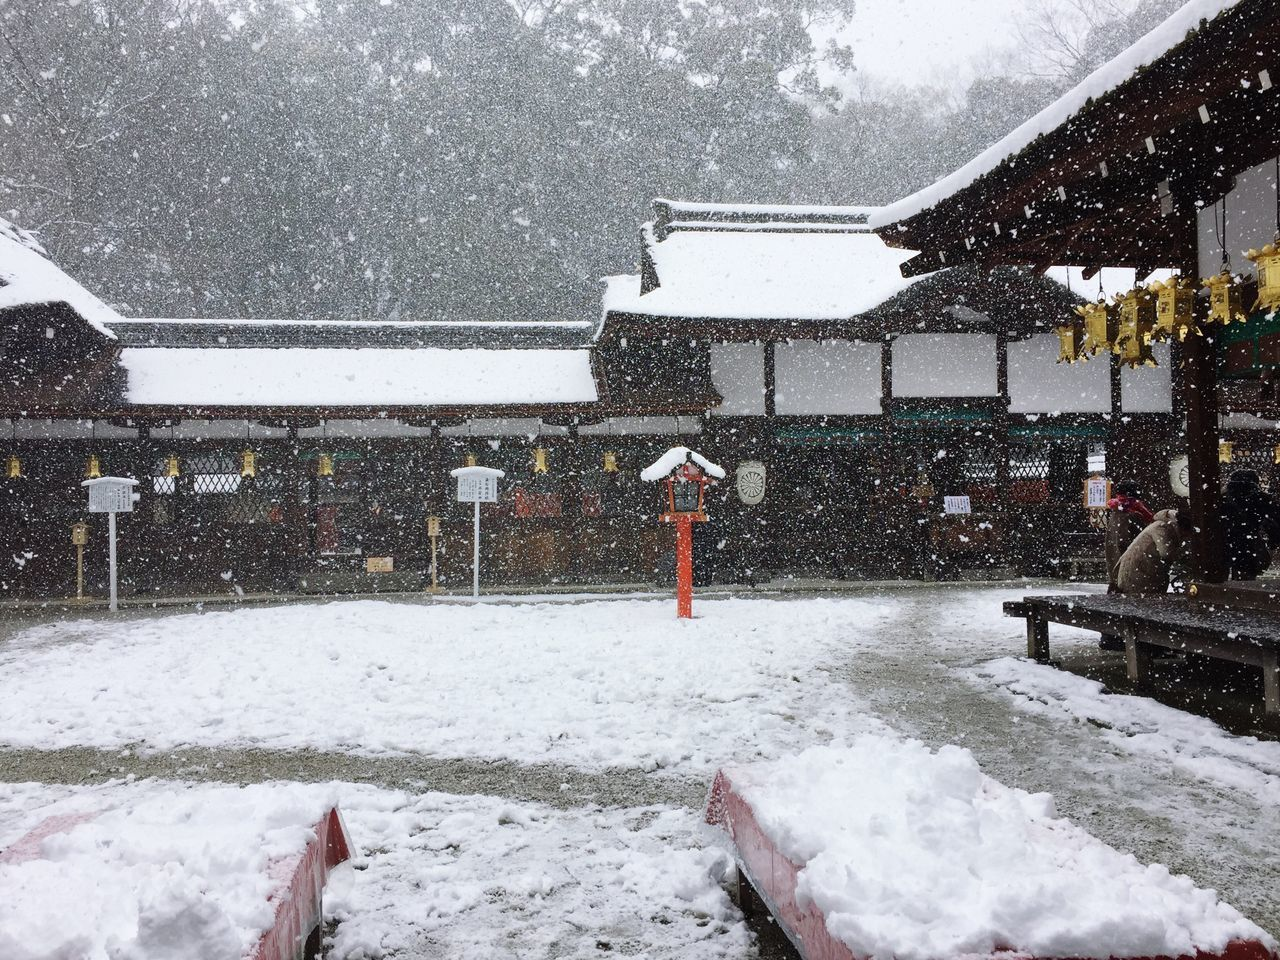 河合神社 Winter Snow Cold Temperature Weather Snowing White Color Nature Covering Beauty In Nature Frozen Snowfall Day Architecture Outdoors Built Structure Real People Warm Clothing Snow ❄ Snowing ❄ Snowing Day Snow